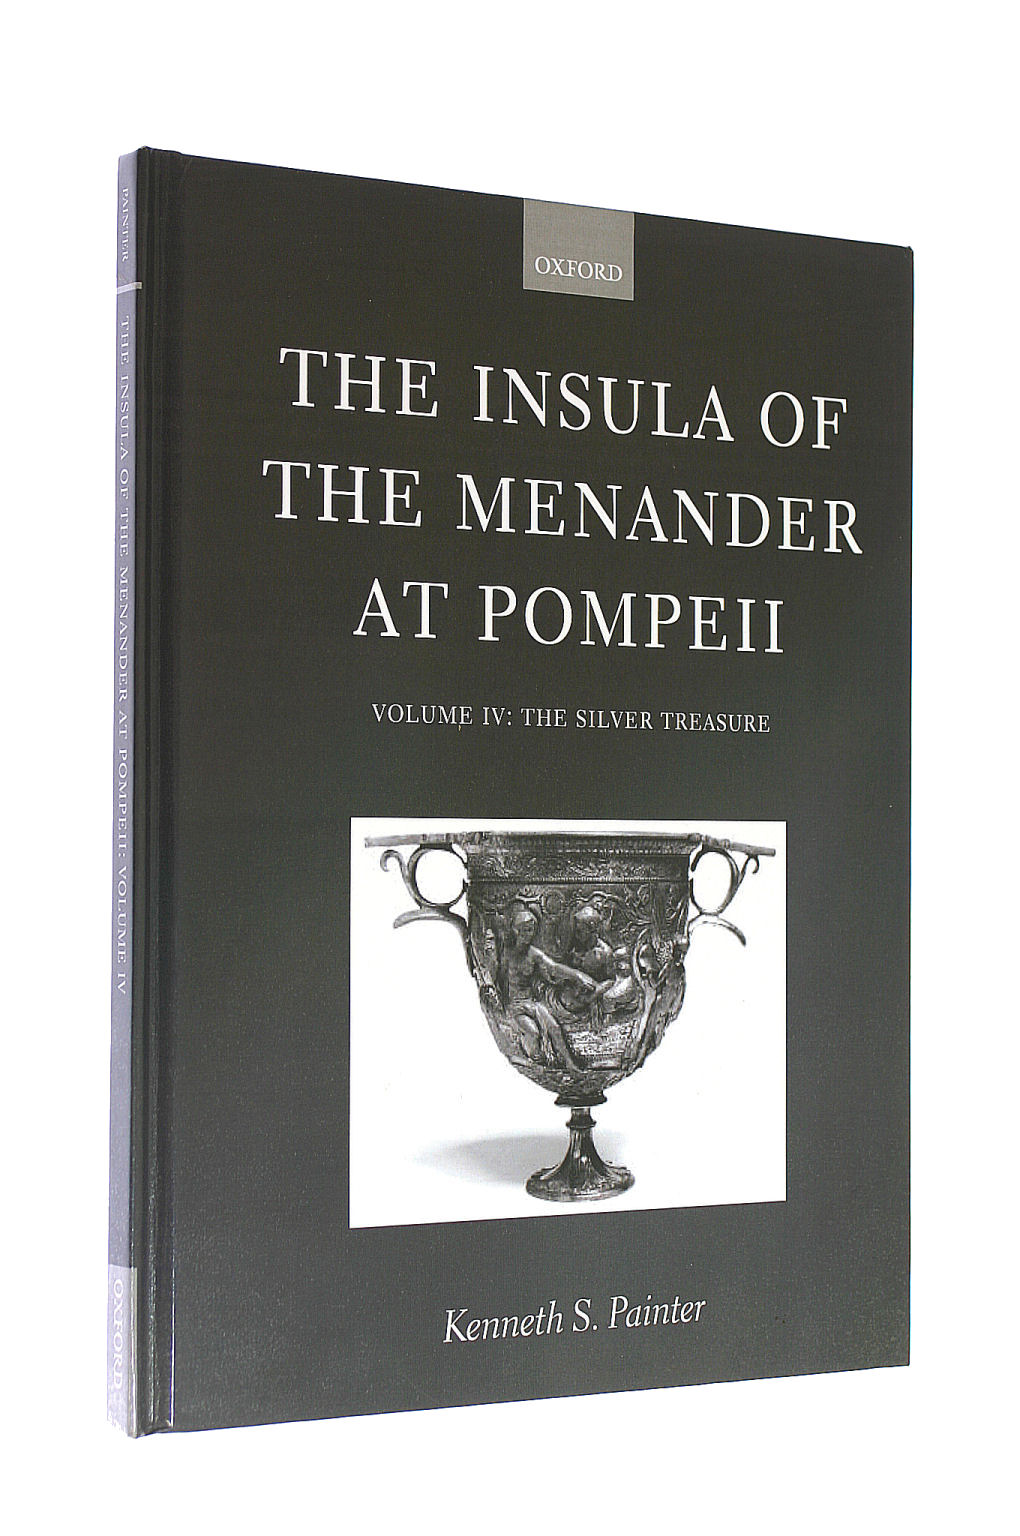 Image for The Insula of the Menander at Pompeii: Volume IV: The Silver Treasure: Silver Treasure Vol 4 (INSULAR OF THE MENANDER AT POMPEII)